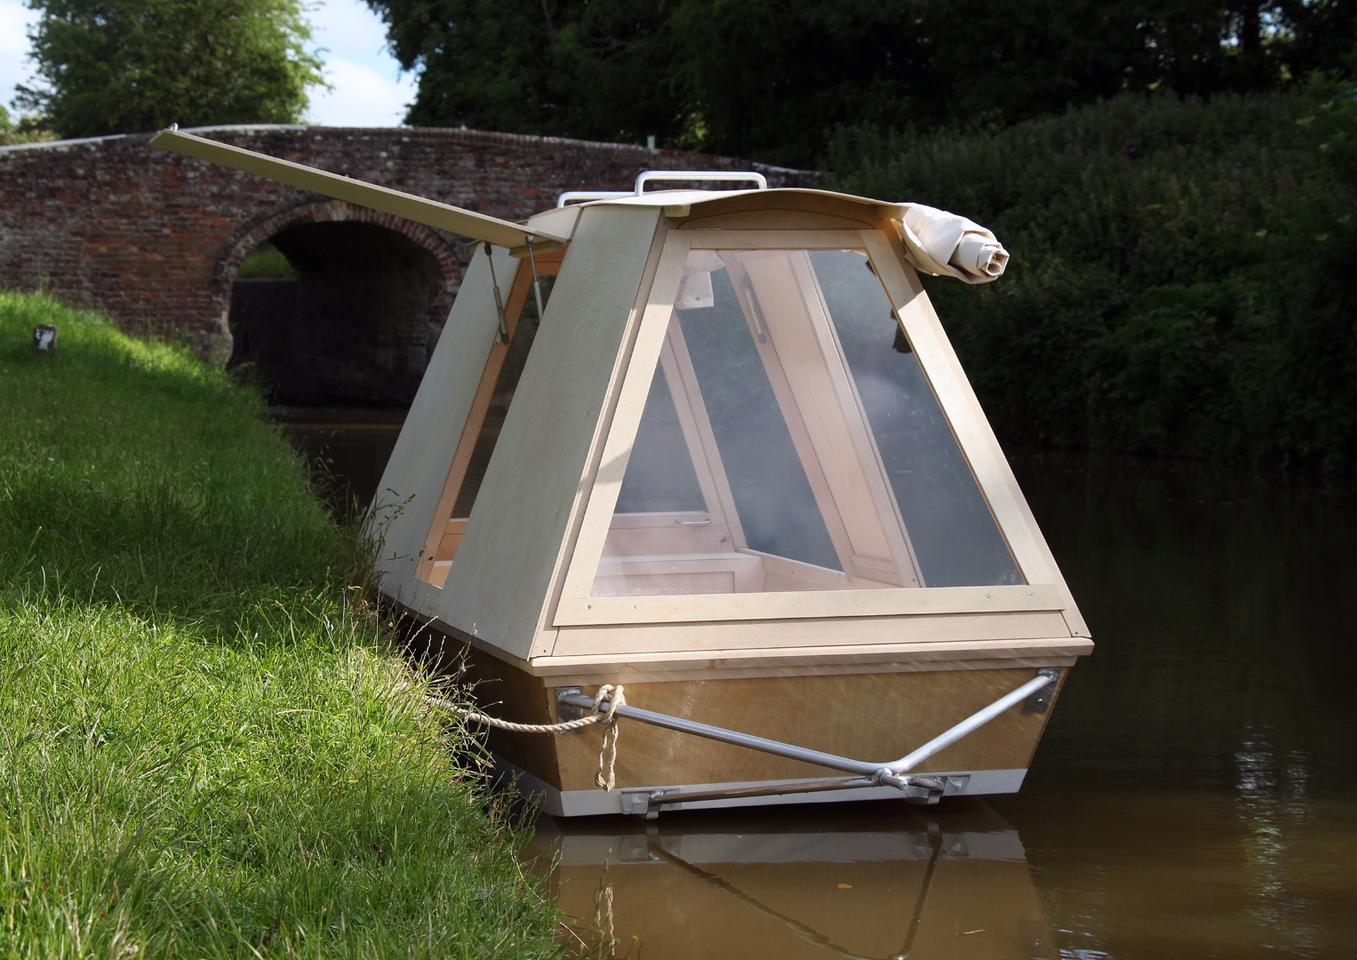 Nomadic floating shelter gets towed to the water by bike